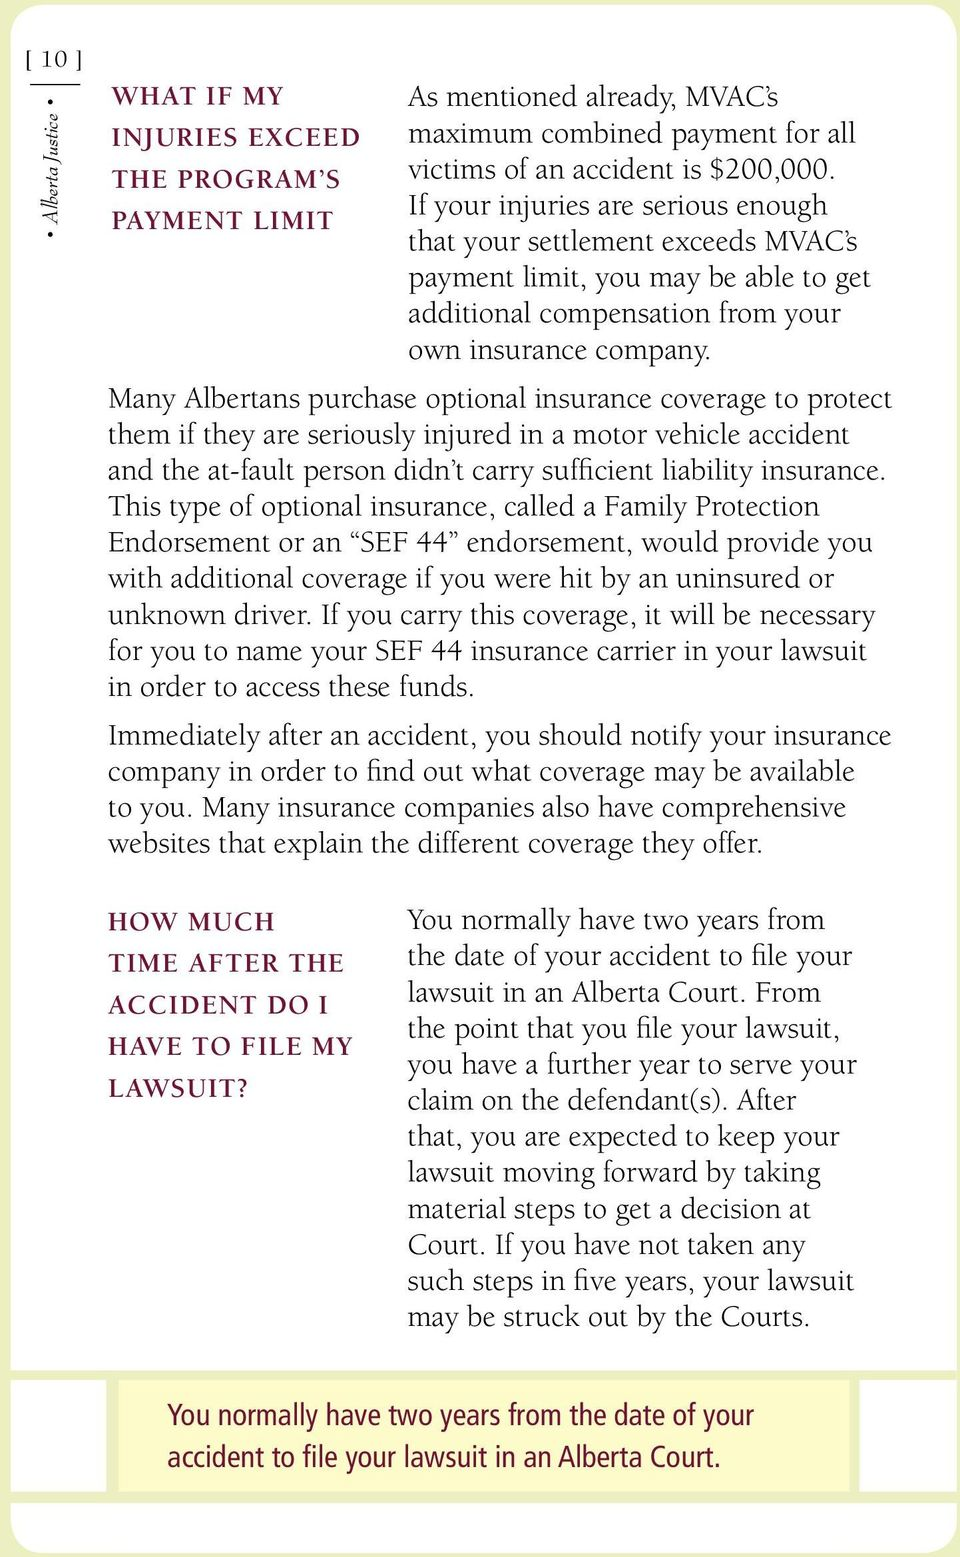 Many Albertans purchase optional insurance coverage to protect them if they are seriously injured in a motor vehicle accident and the at-fault person didn t carry sufficient liability insurance.